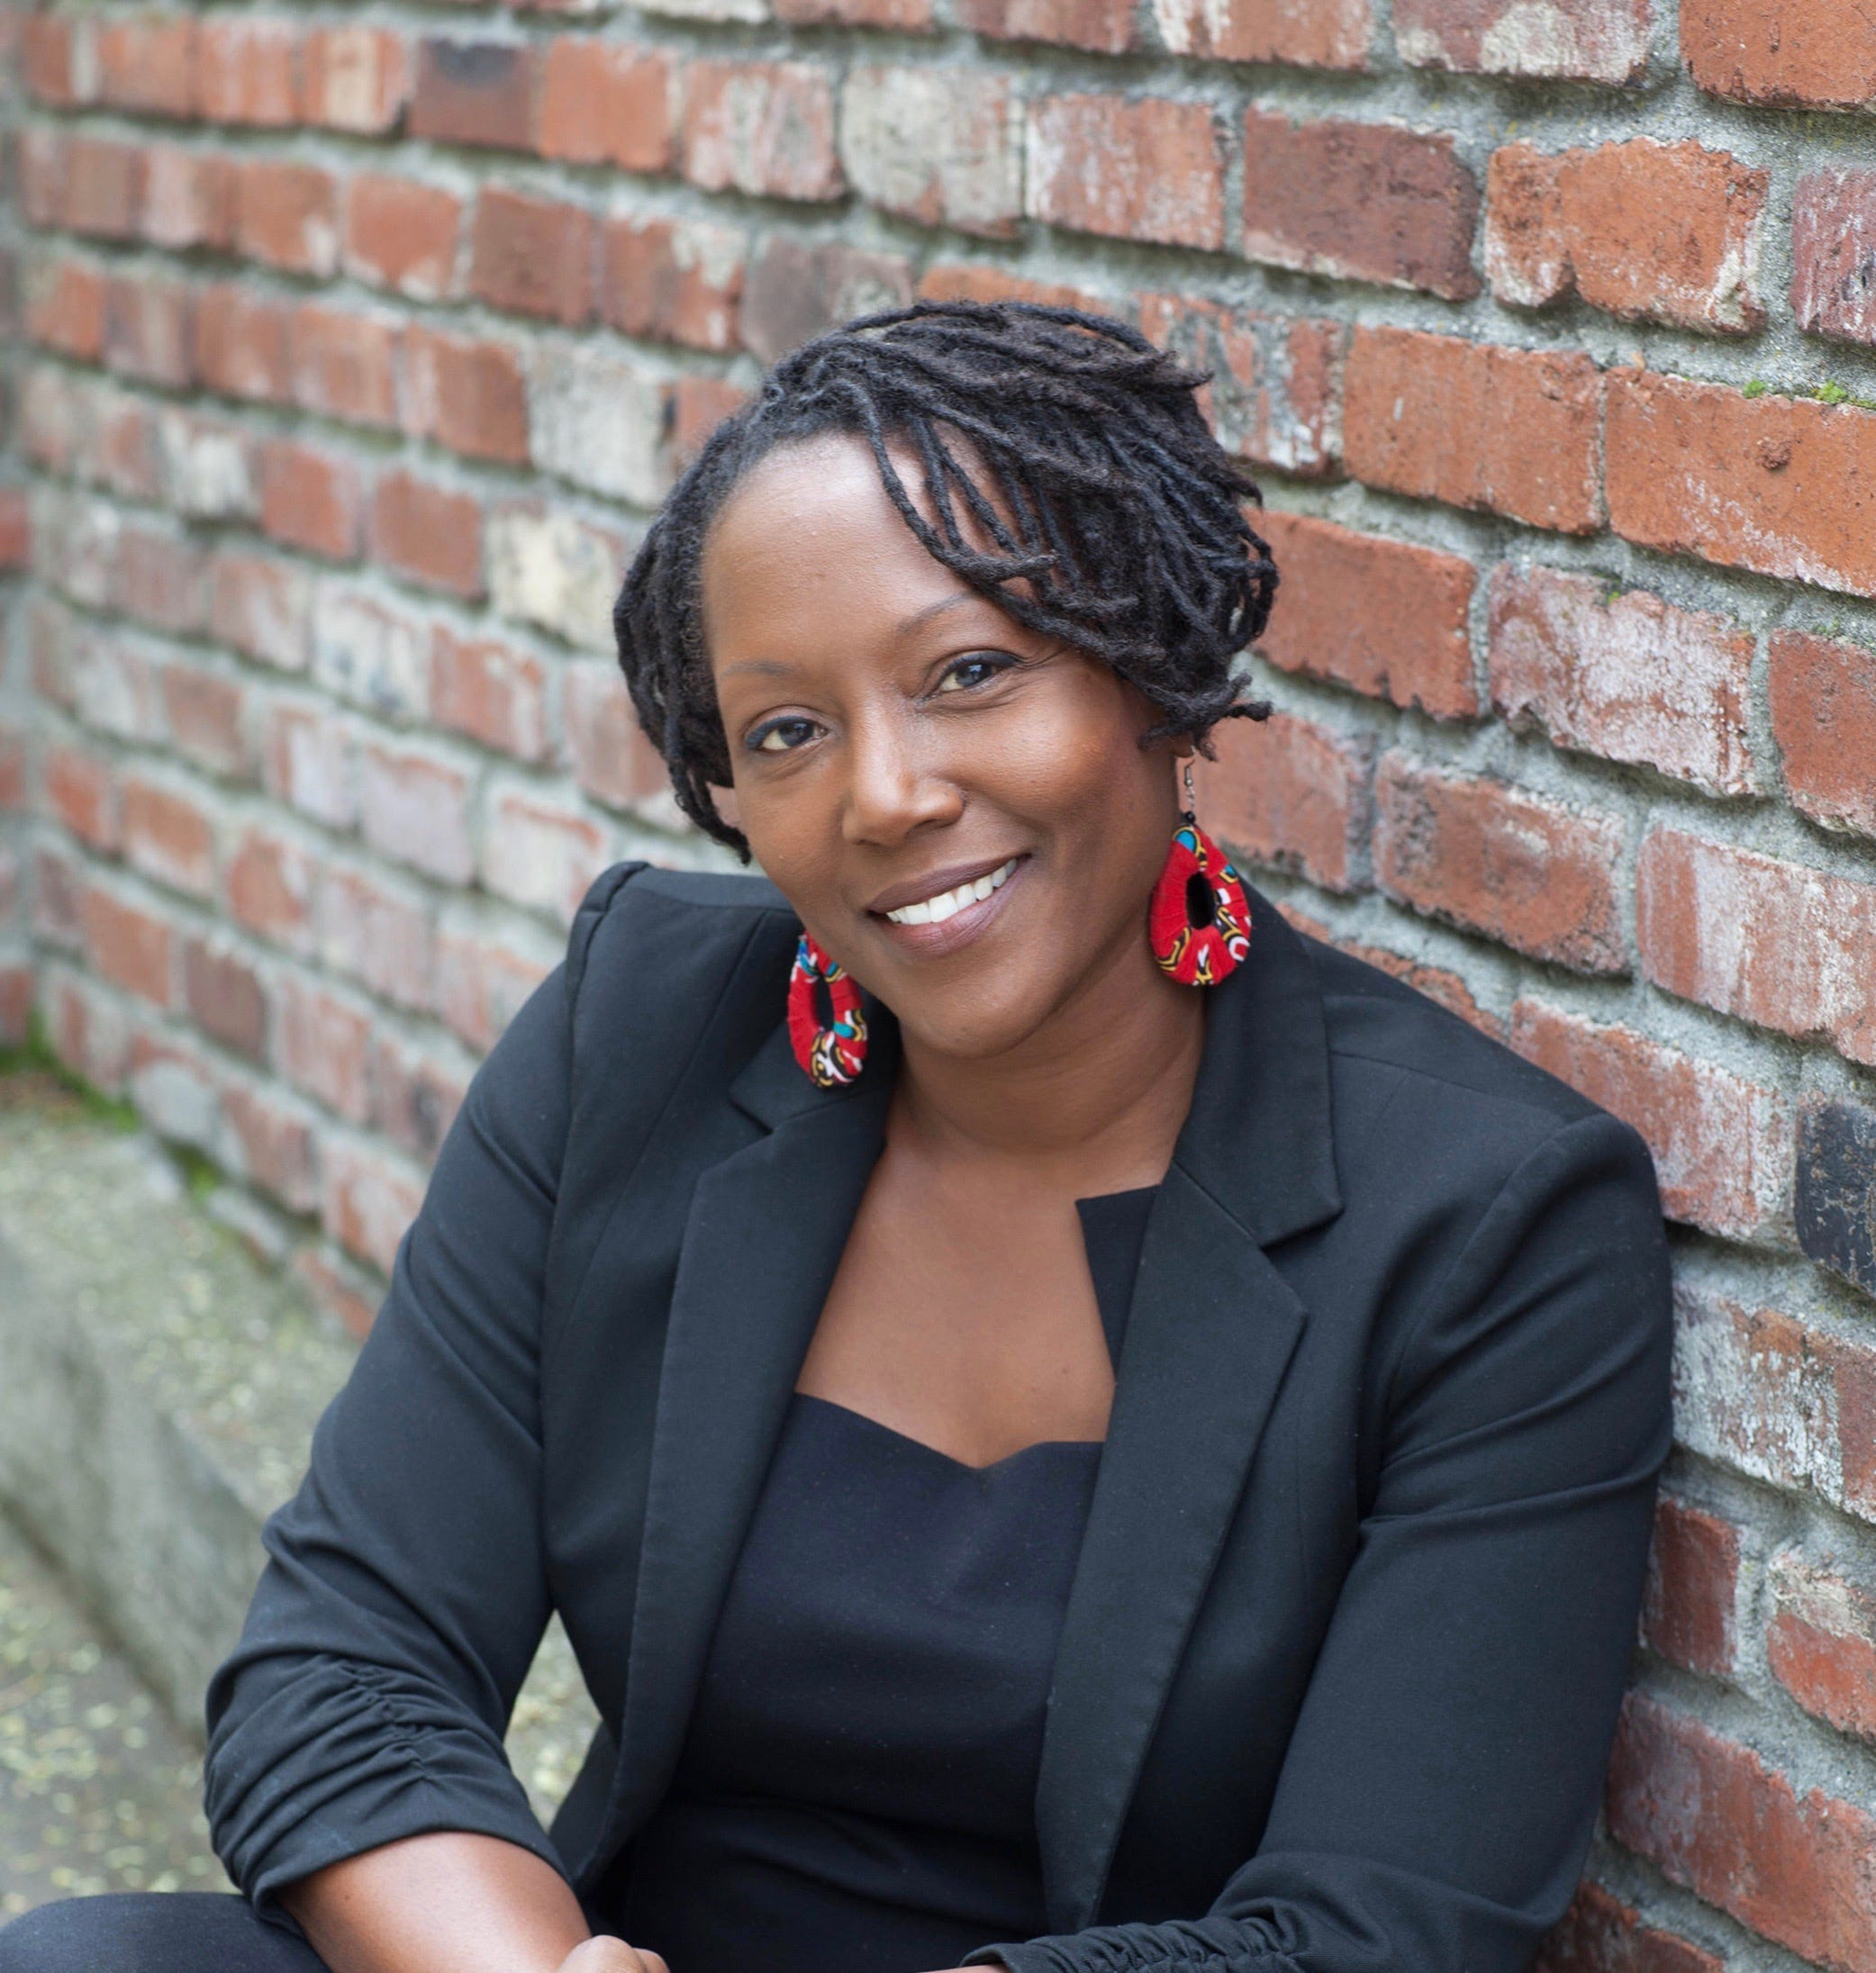 Monique W. Morris on Black Girls Need Protection From School Criminalization